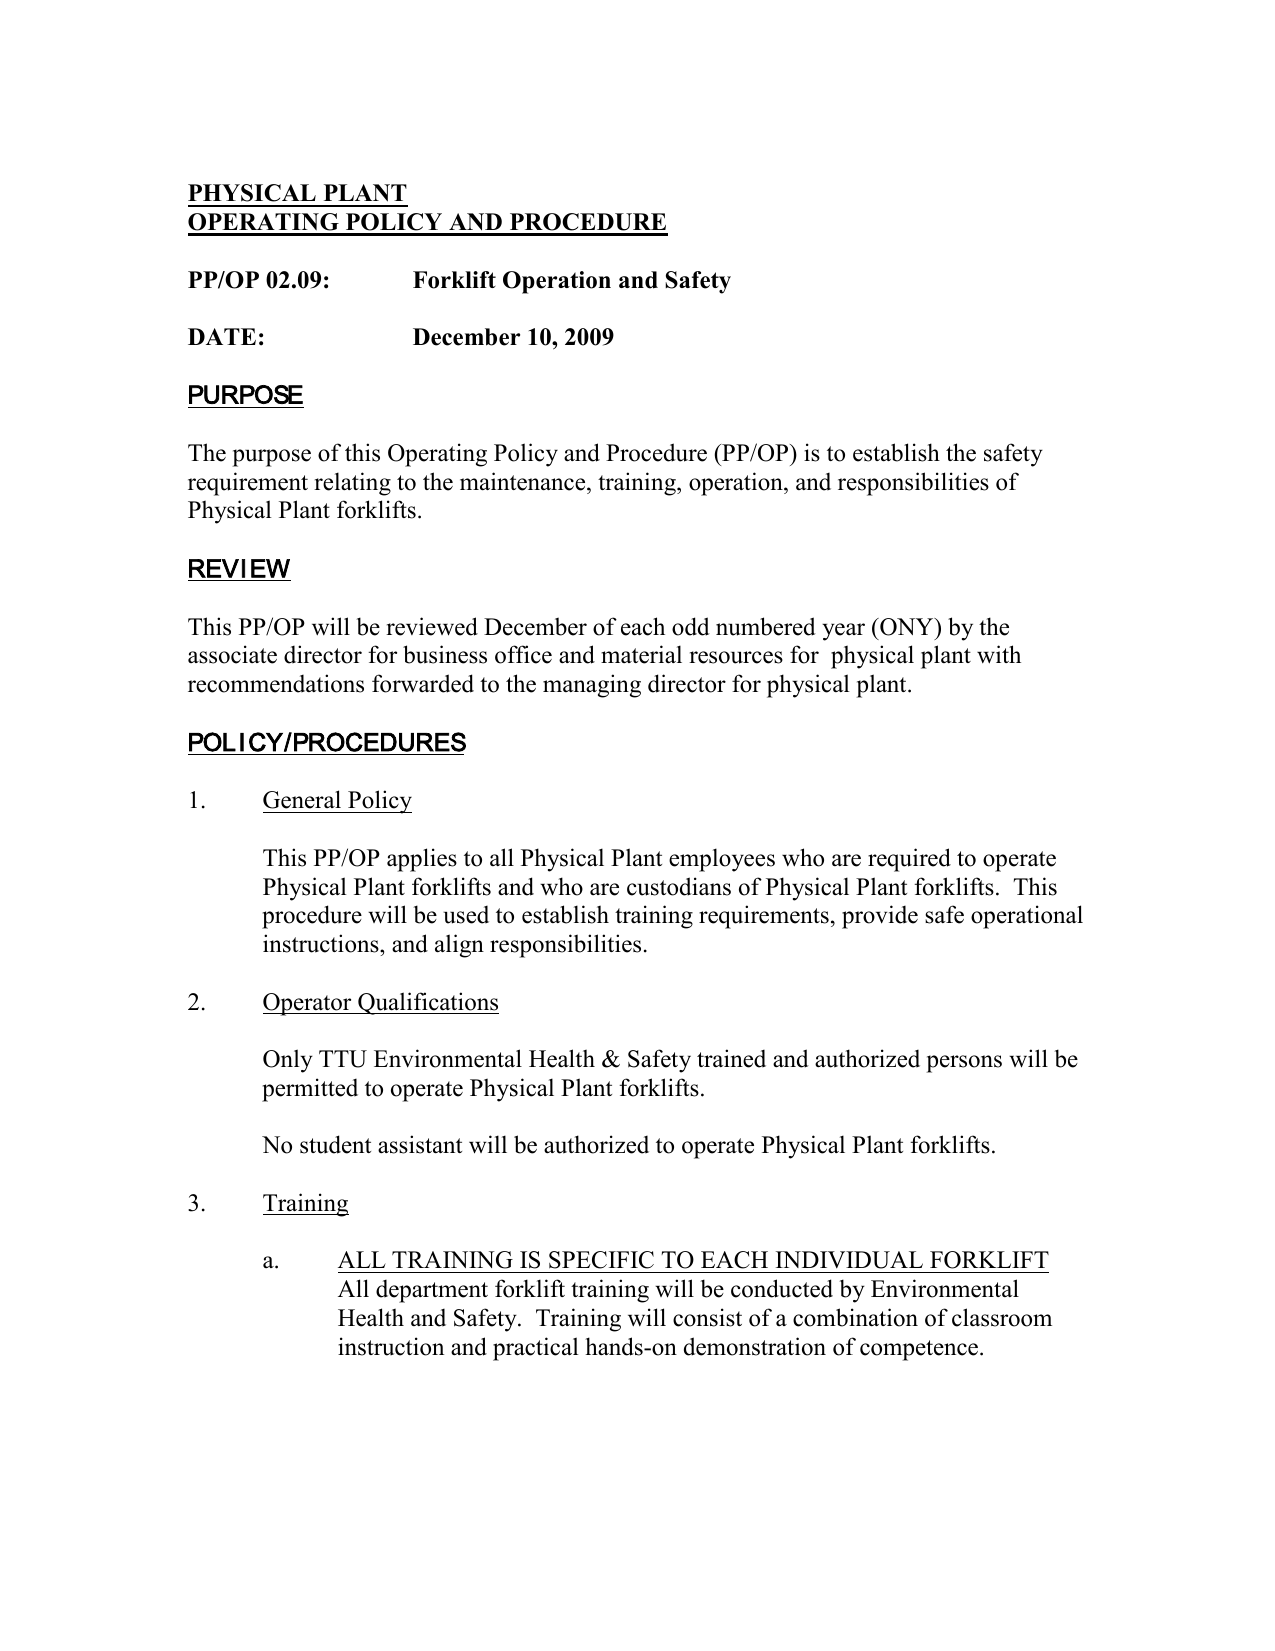 Physical Plant Operating Policy And Procedure Ppop 0209